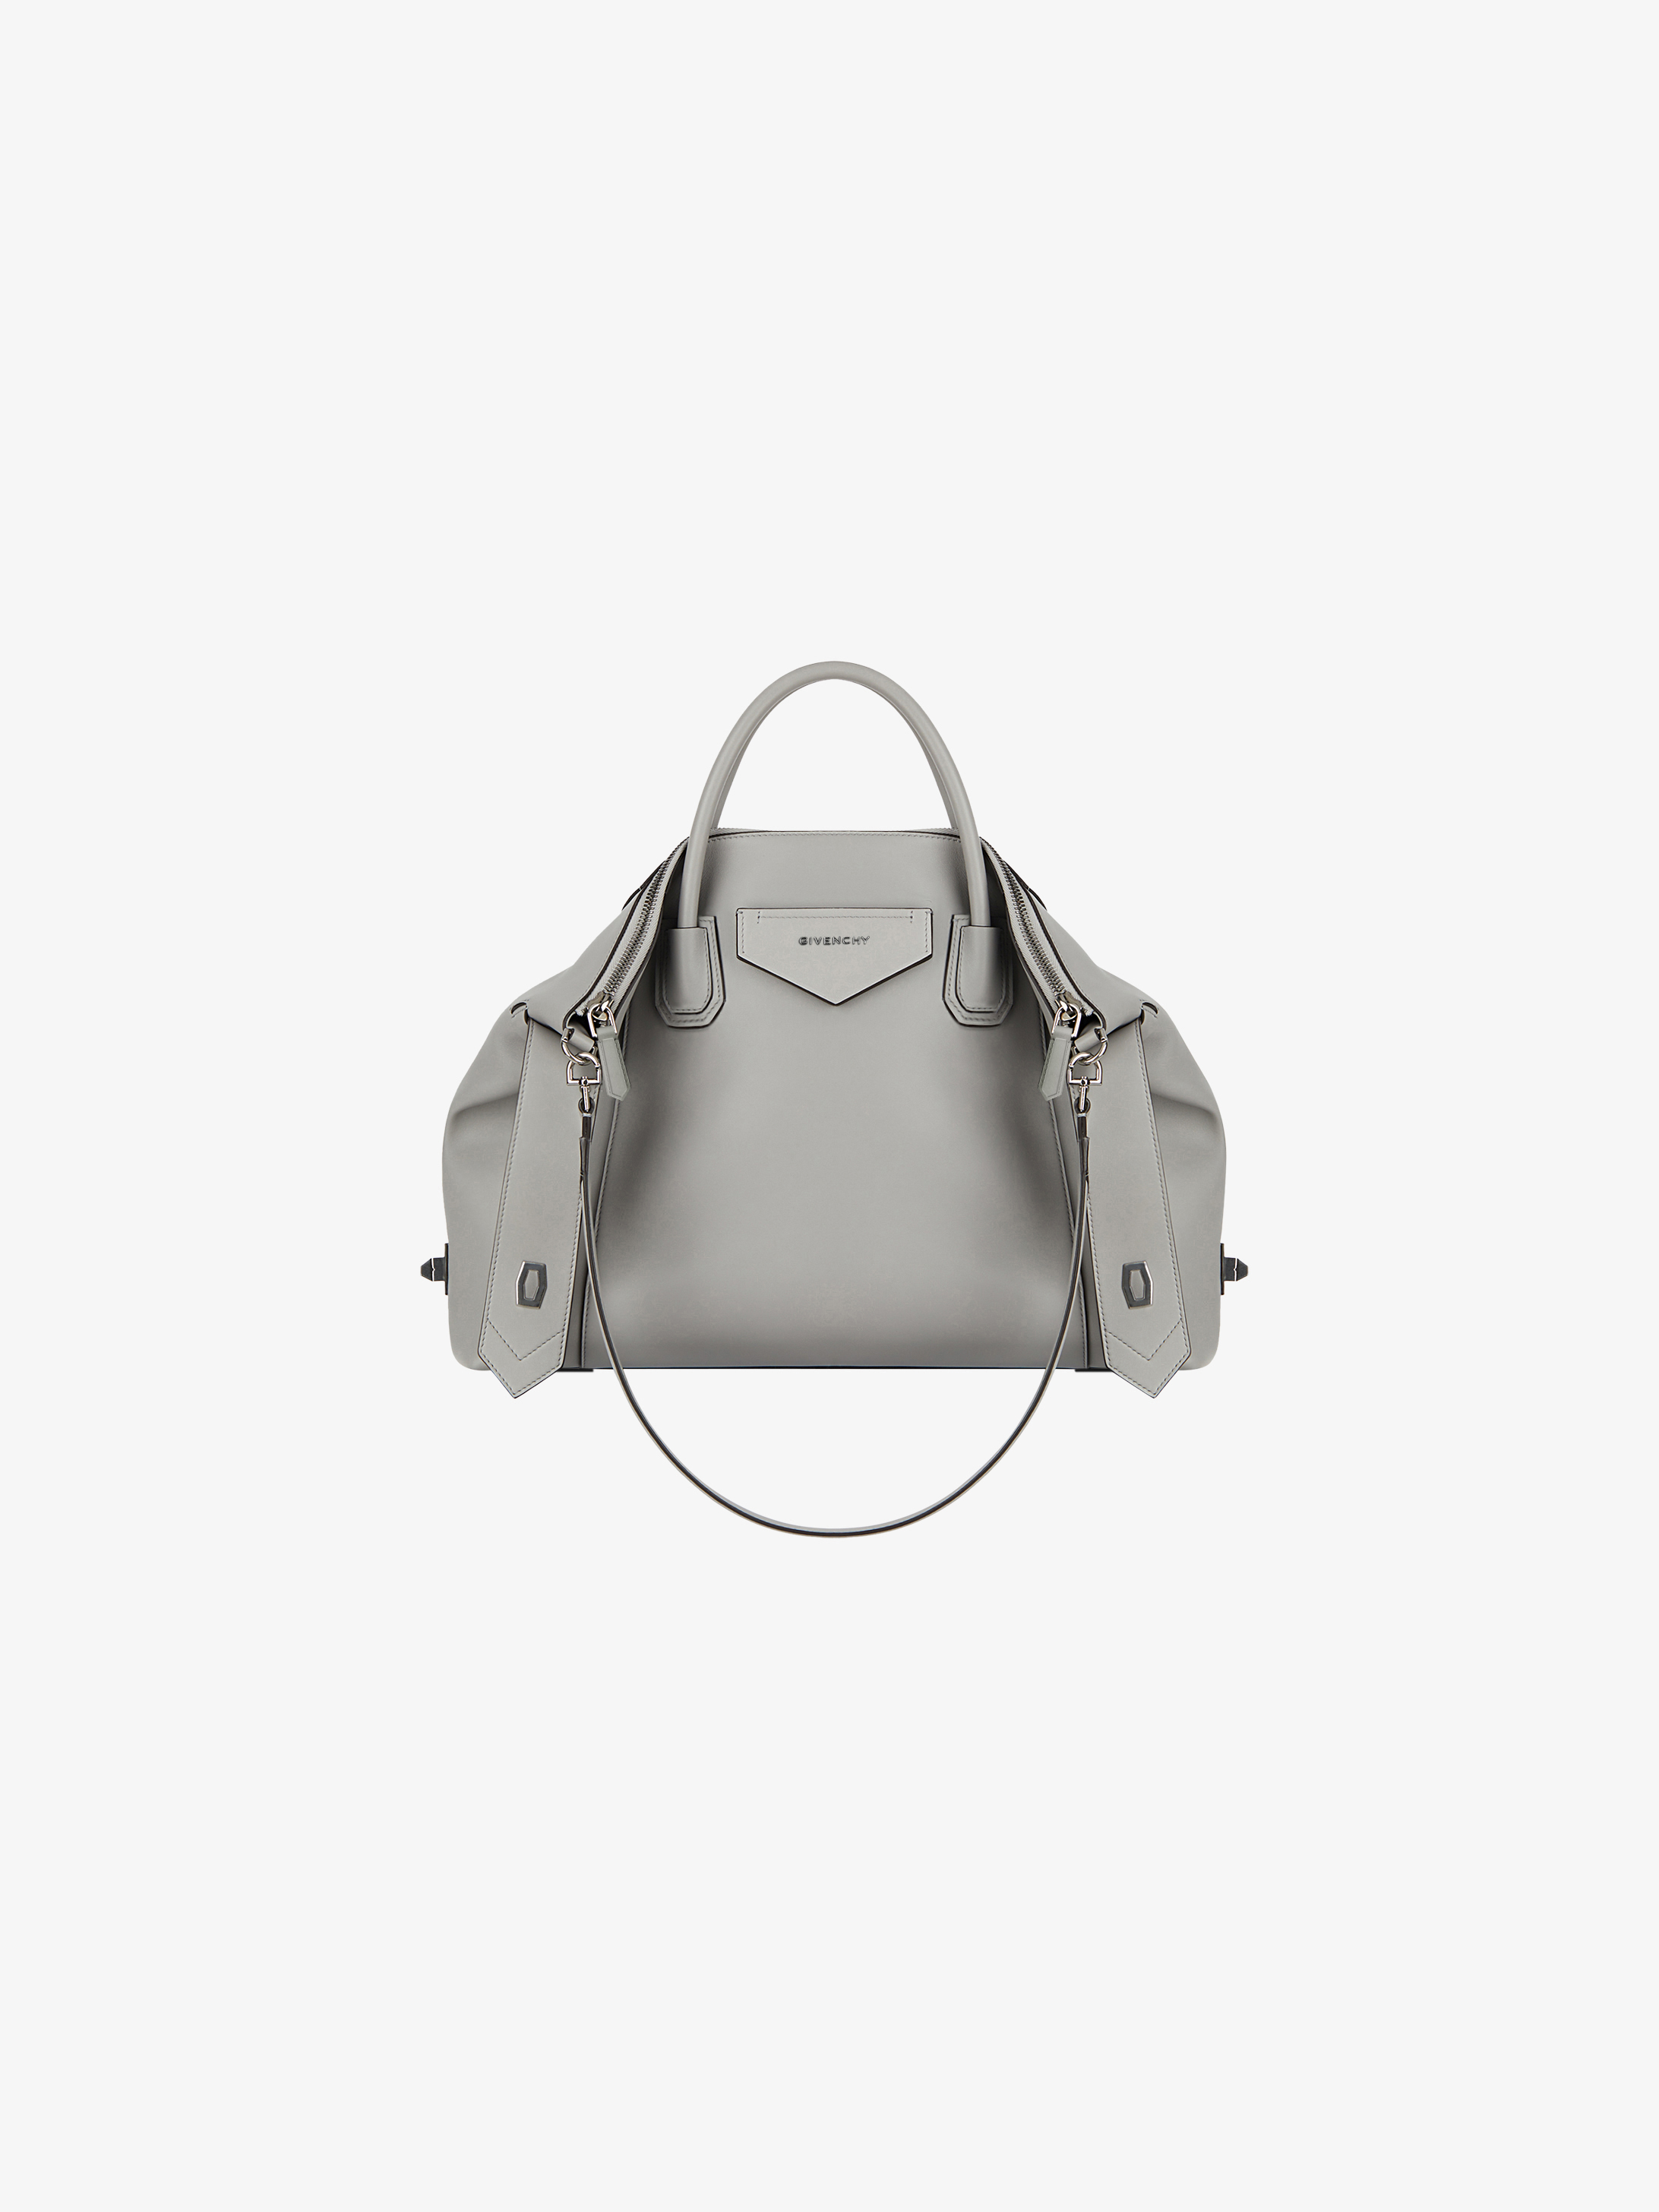 Sac Antigona Soft médium en cuir souple